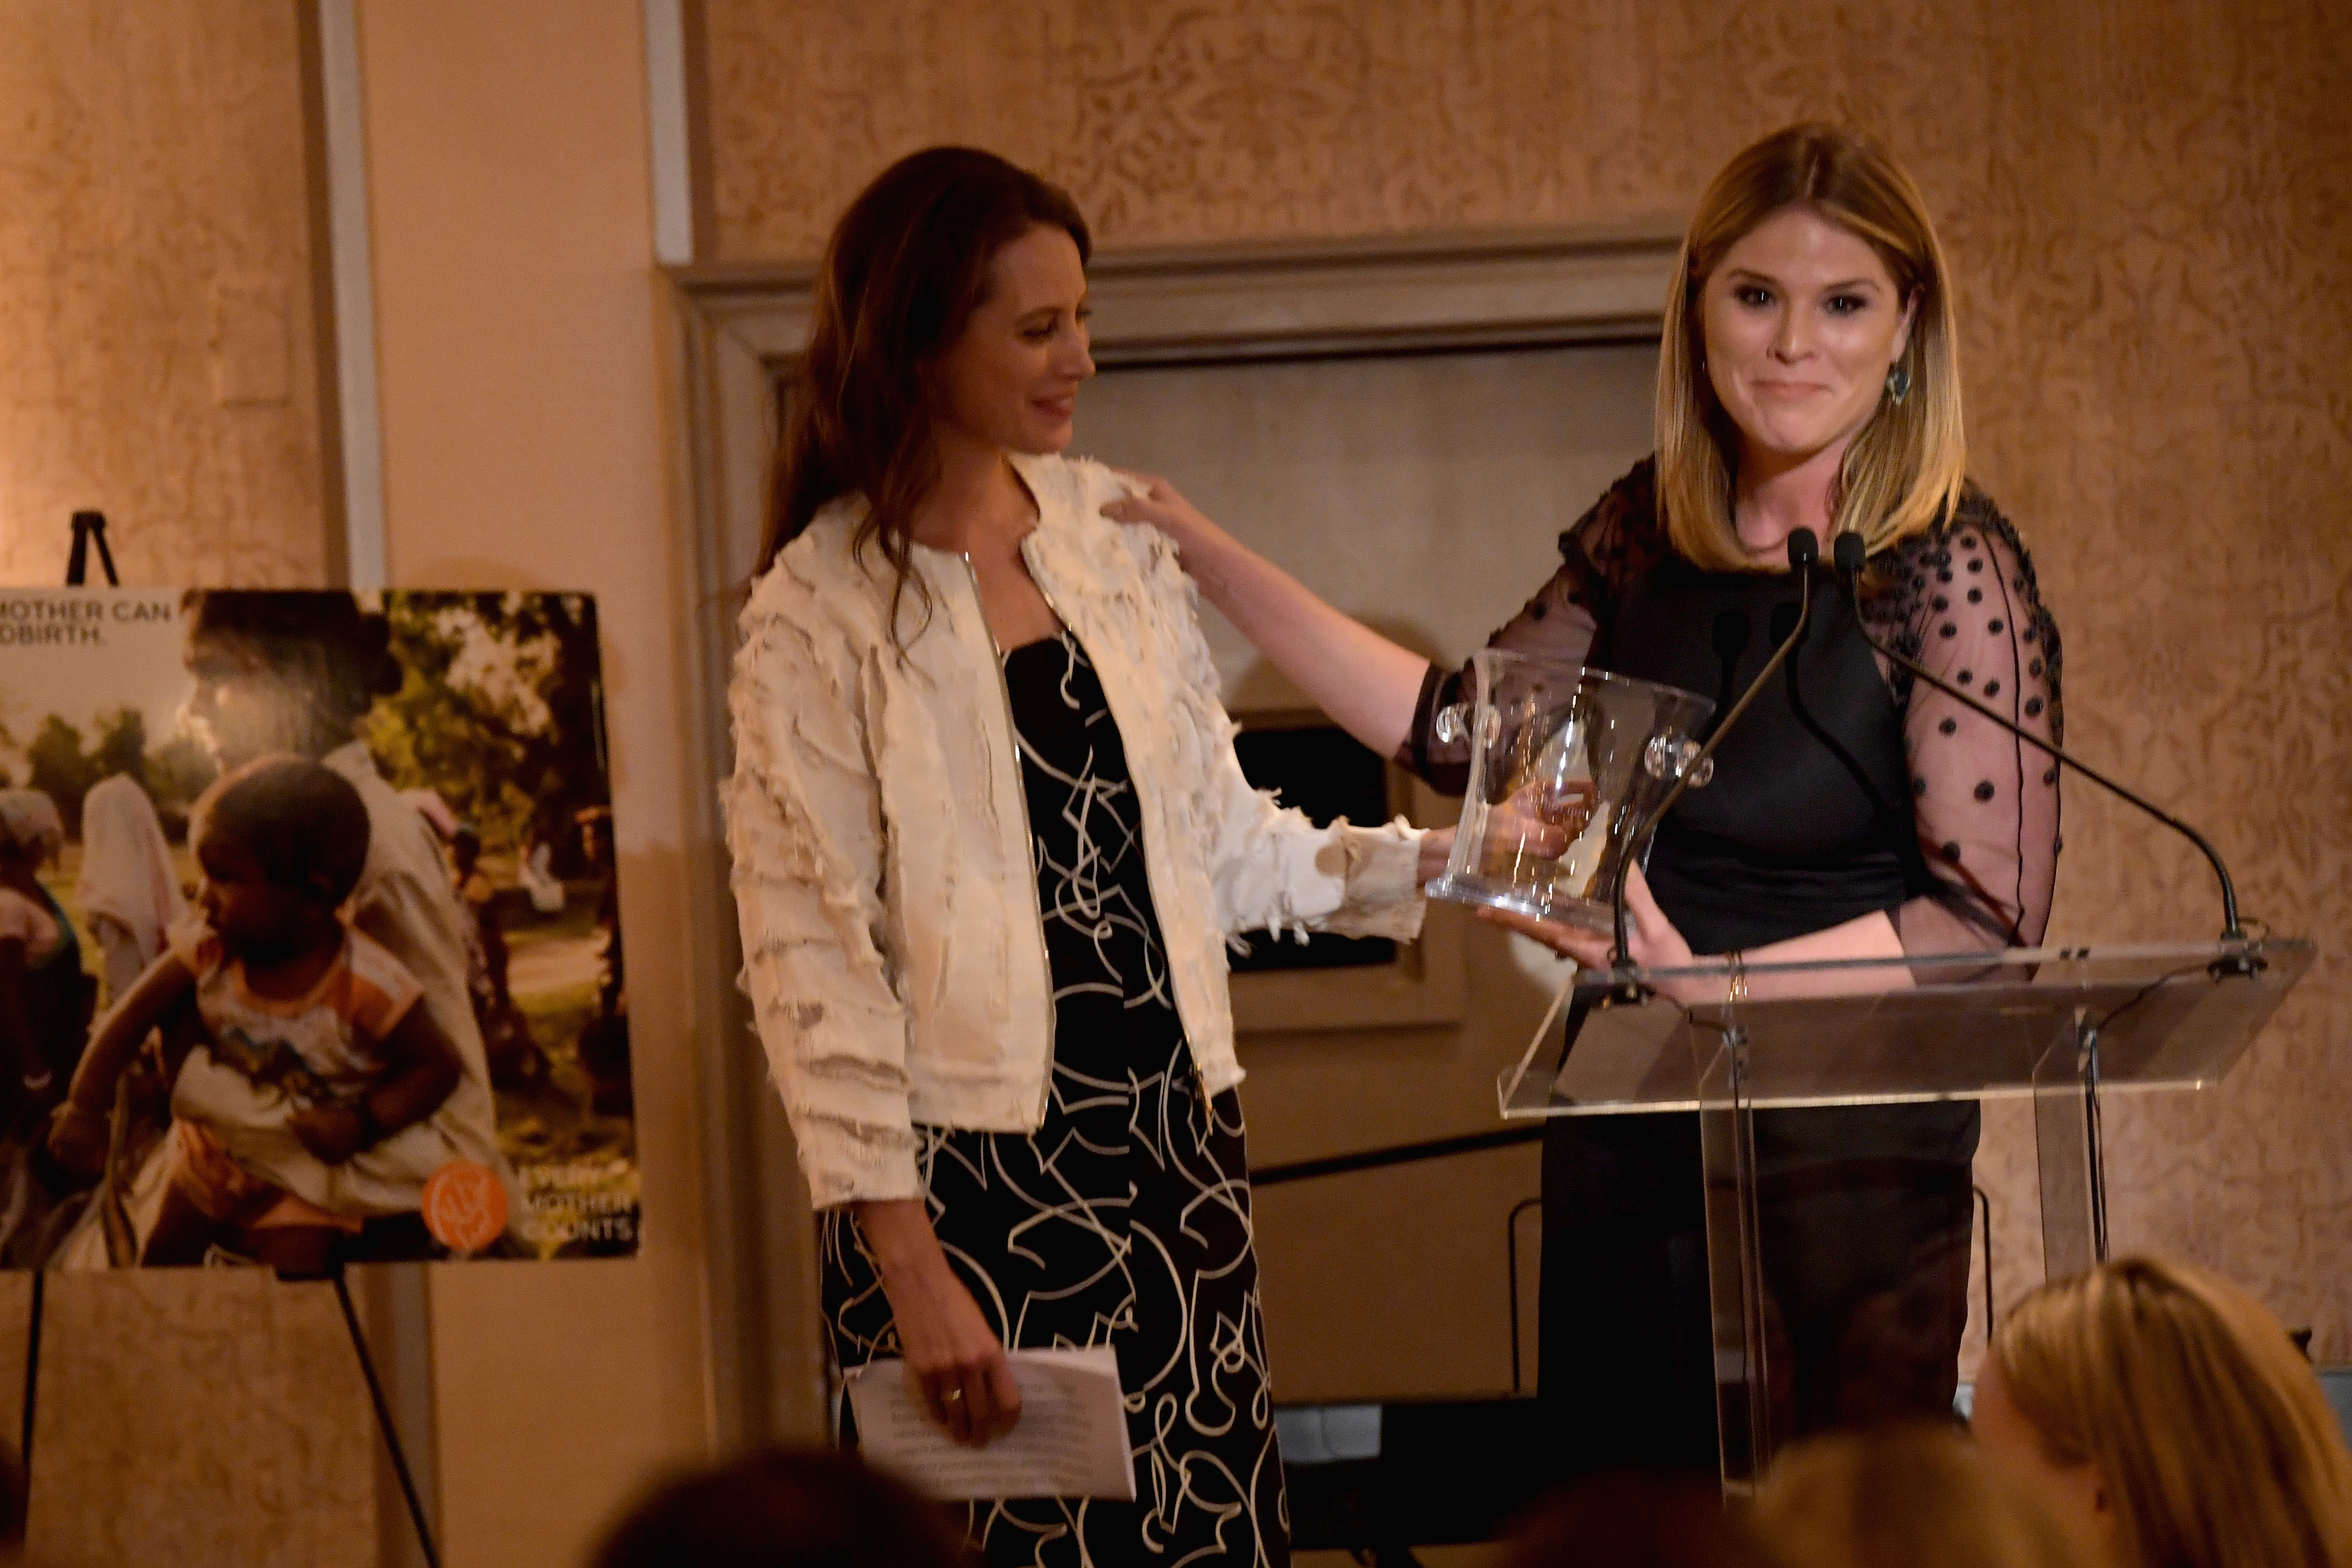 GREENWICH, CT - JUNE 01:  Christy Turlington and Jenna Bush Hager speak on stage during the Changemaker Honoree Gala during the Greenwich International Film Festival on June 1, 2017 in Greenwich, Connecticut.  (Photo by Ben Gabbe/Getty Images for Greenwich International Film Festival)